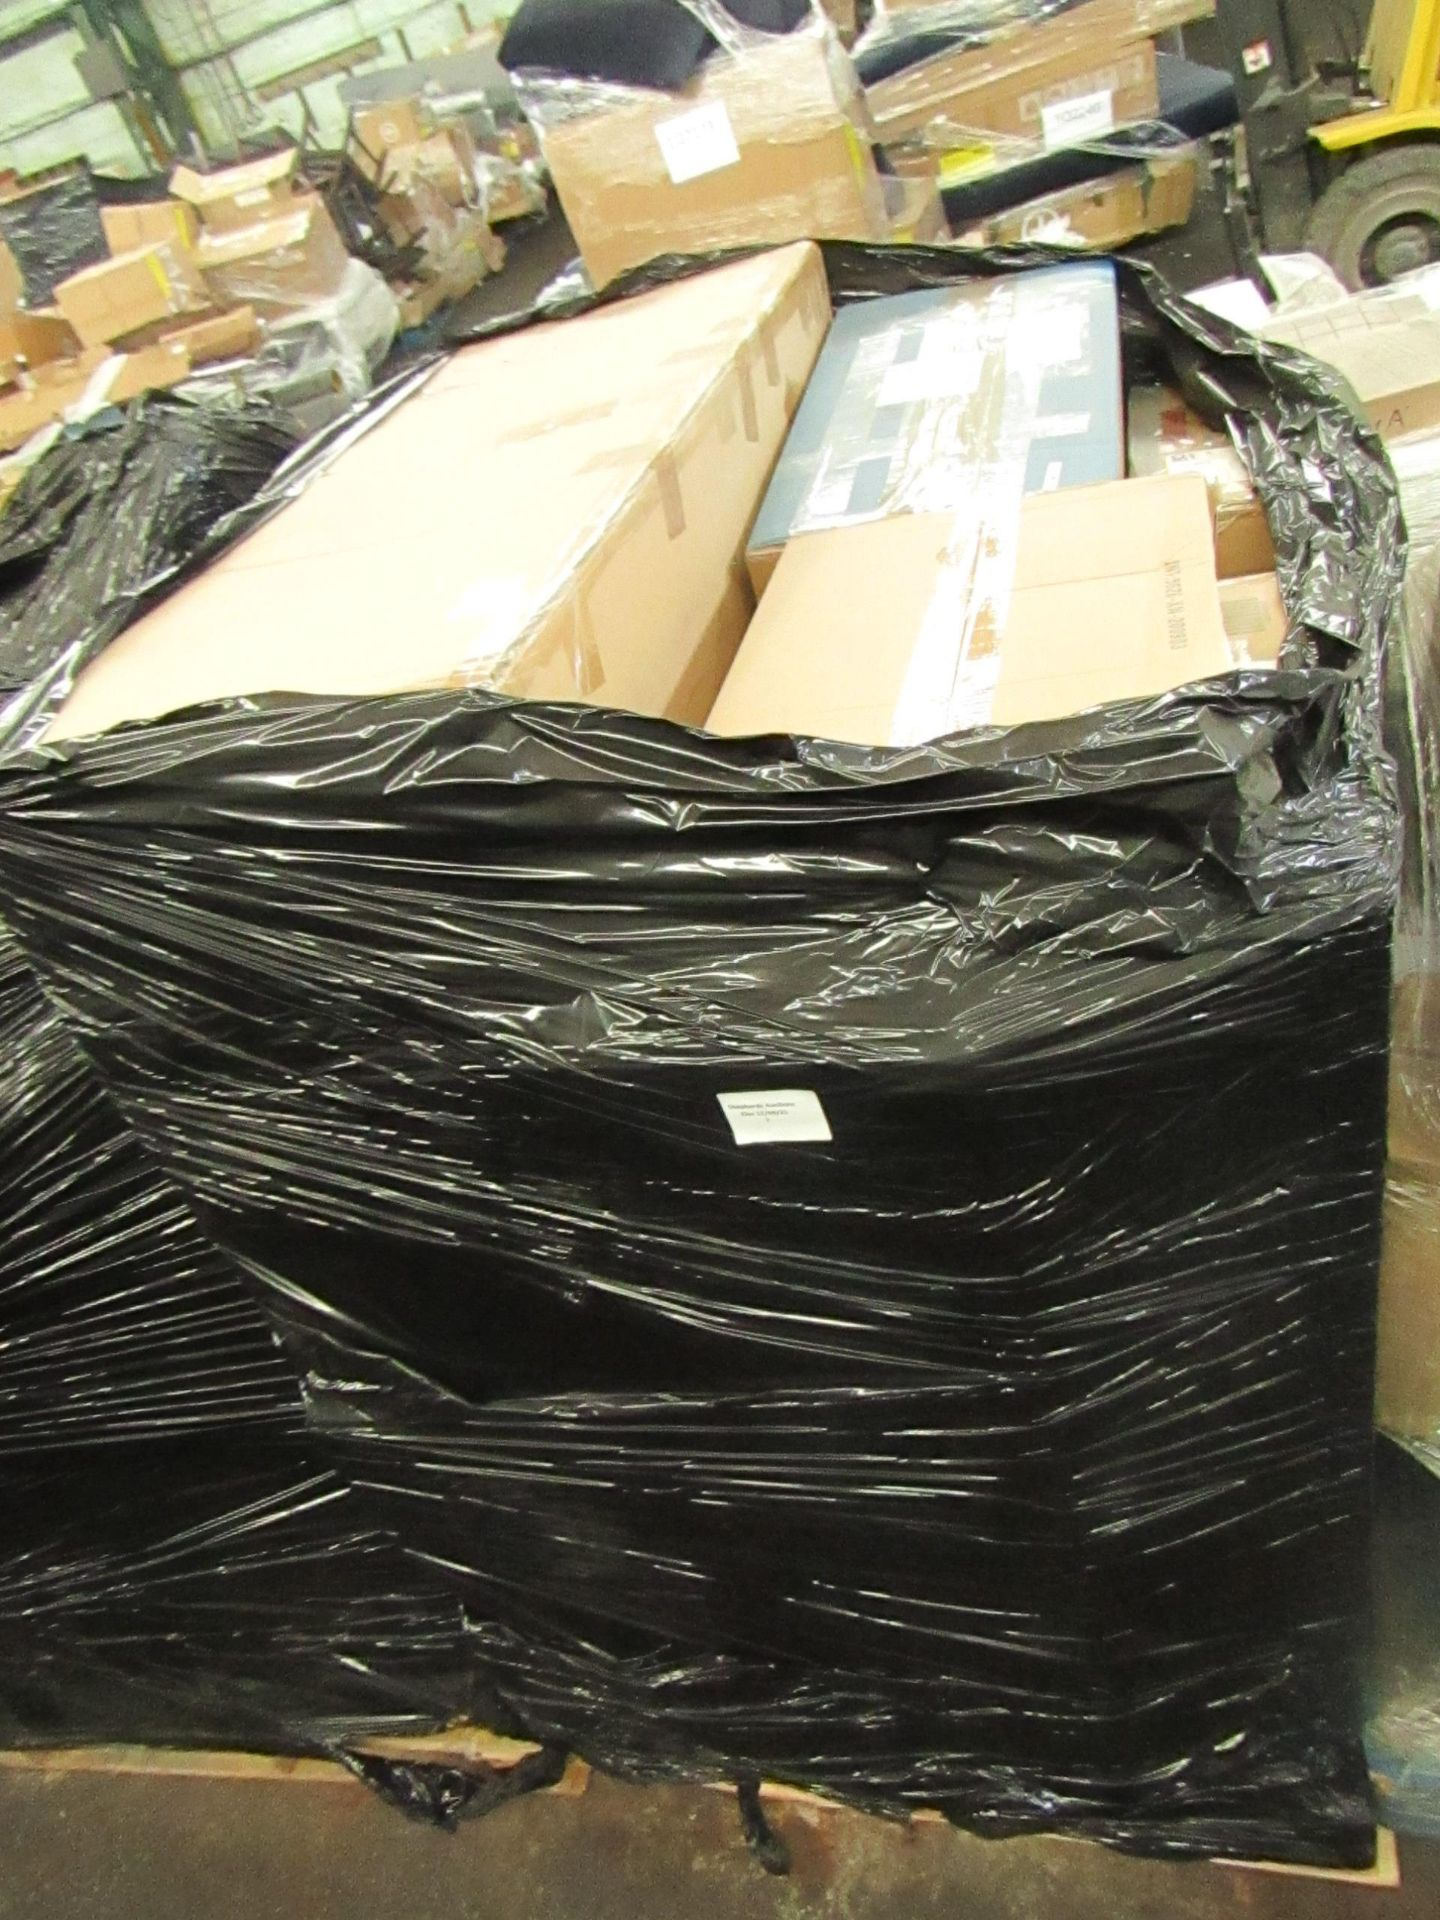 | 1x | PALLET CONTAINING CUSTOMER RETURN STOCK FROM A LARGE ONLINE RETAILER | UNMANIFESTED |